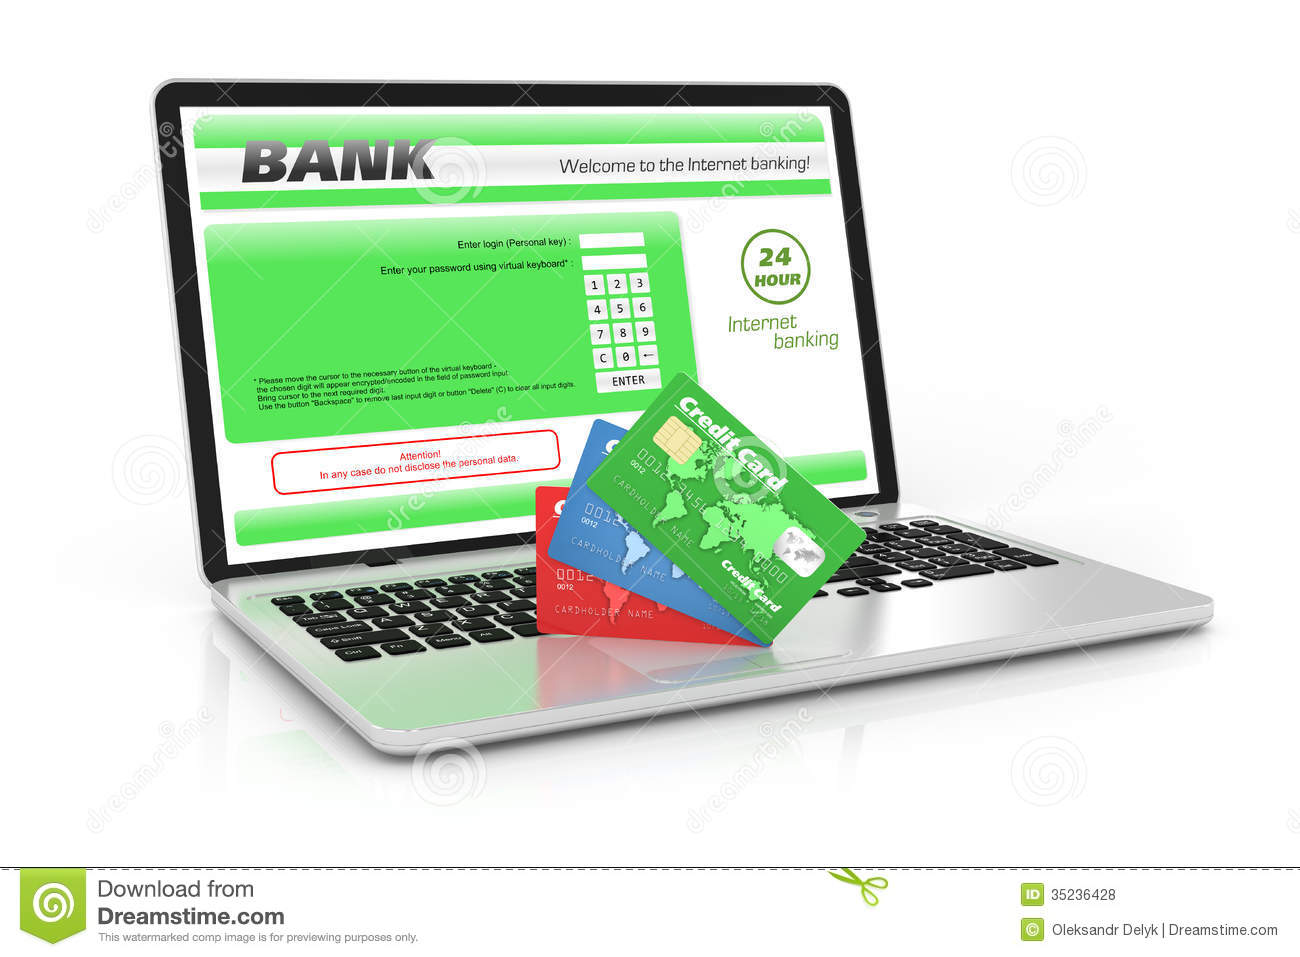 Internet banking service.